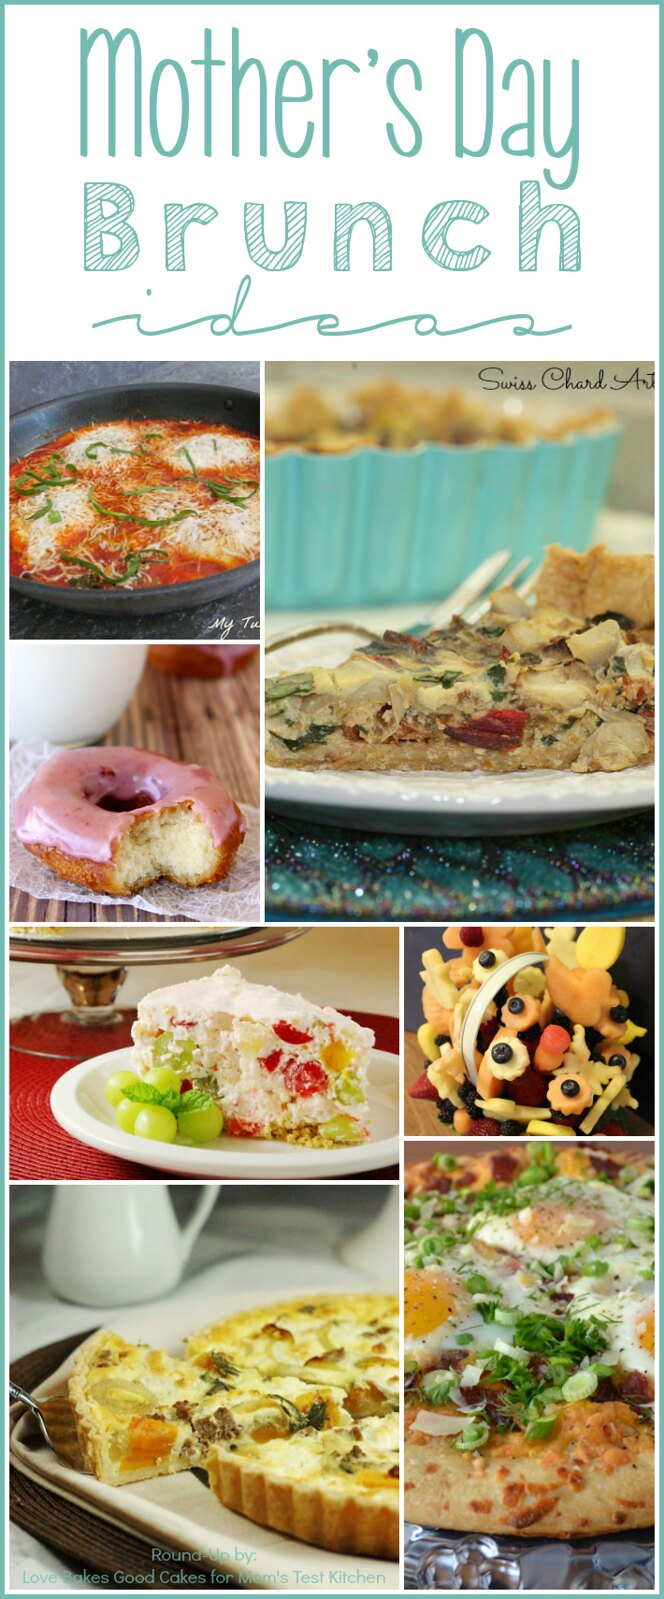 Mother's Day Brunch - more than 45 recipes from your favorite bloggers that are sure to make mom feel special on her day!